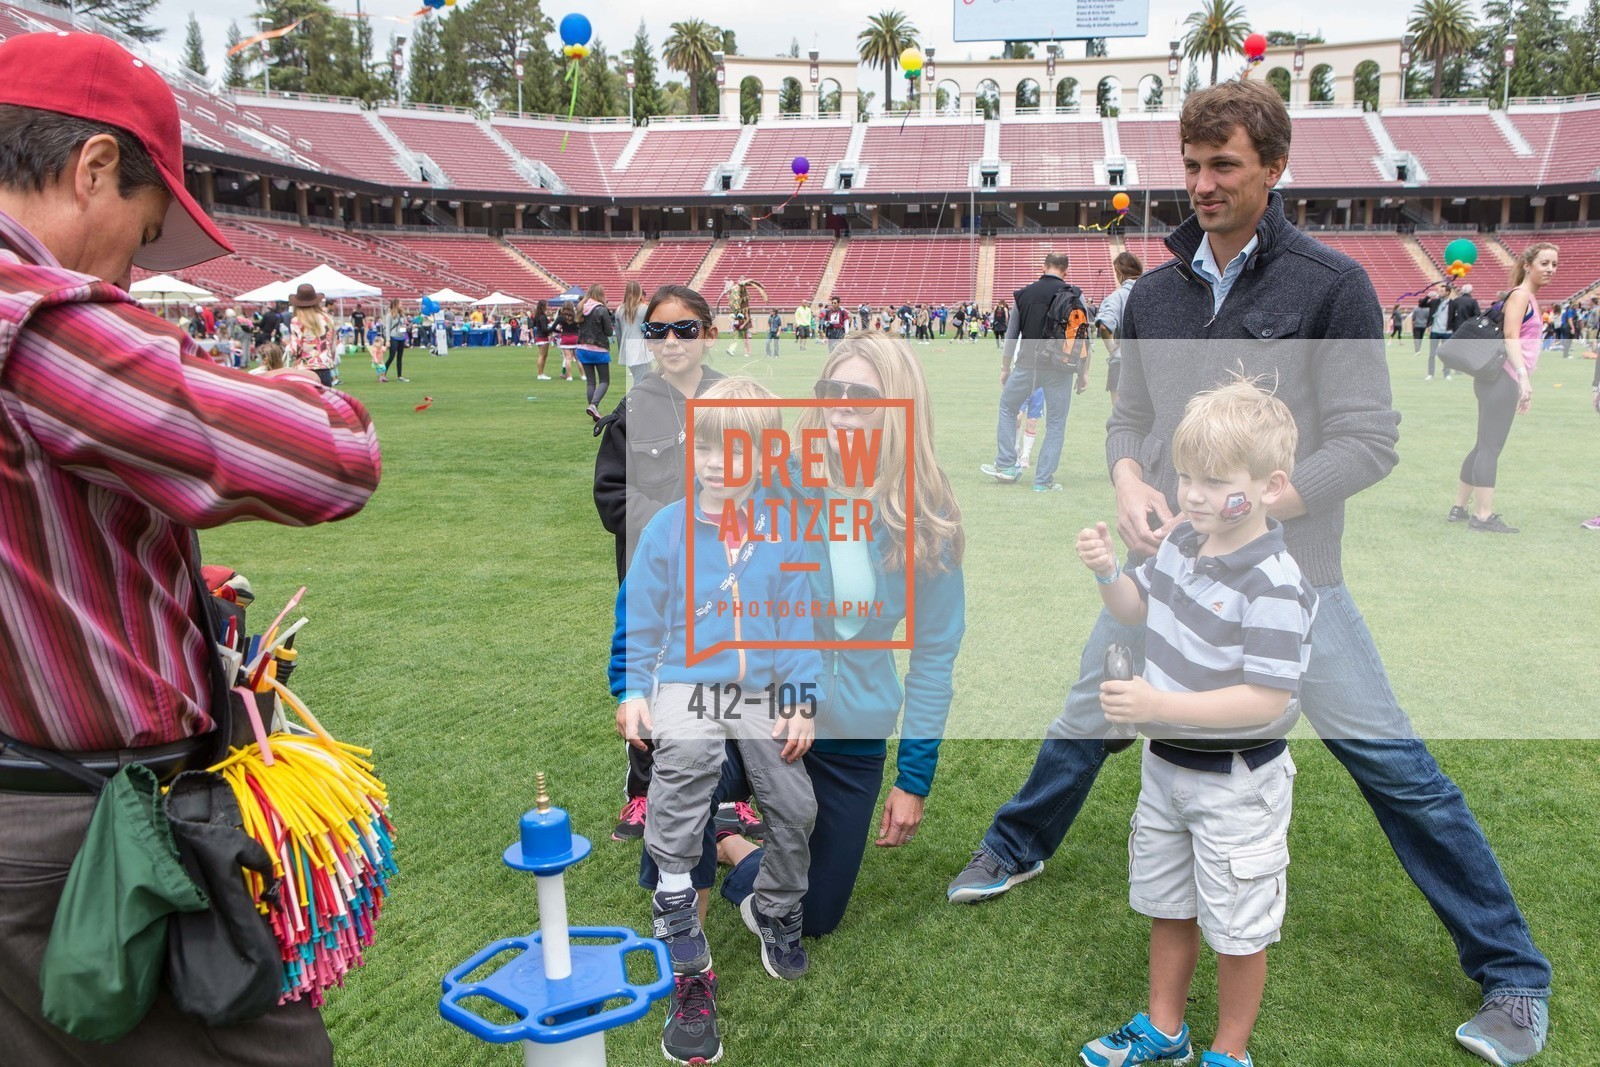 Top picks, Children's Champions, May 16th, 2015, Photo,Drew Altizer, Drew Altizer Photography, full-service event agency, private events, San Francisco photographer, photographer California